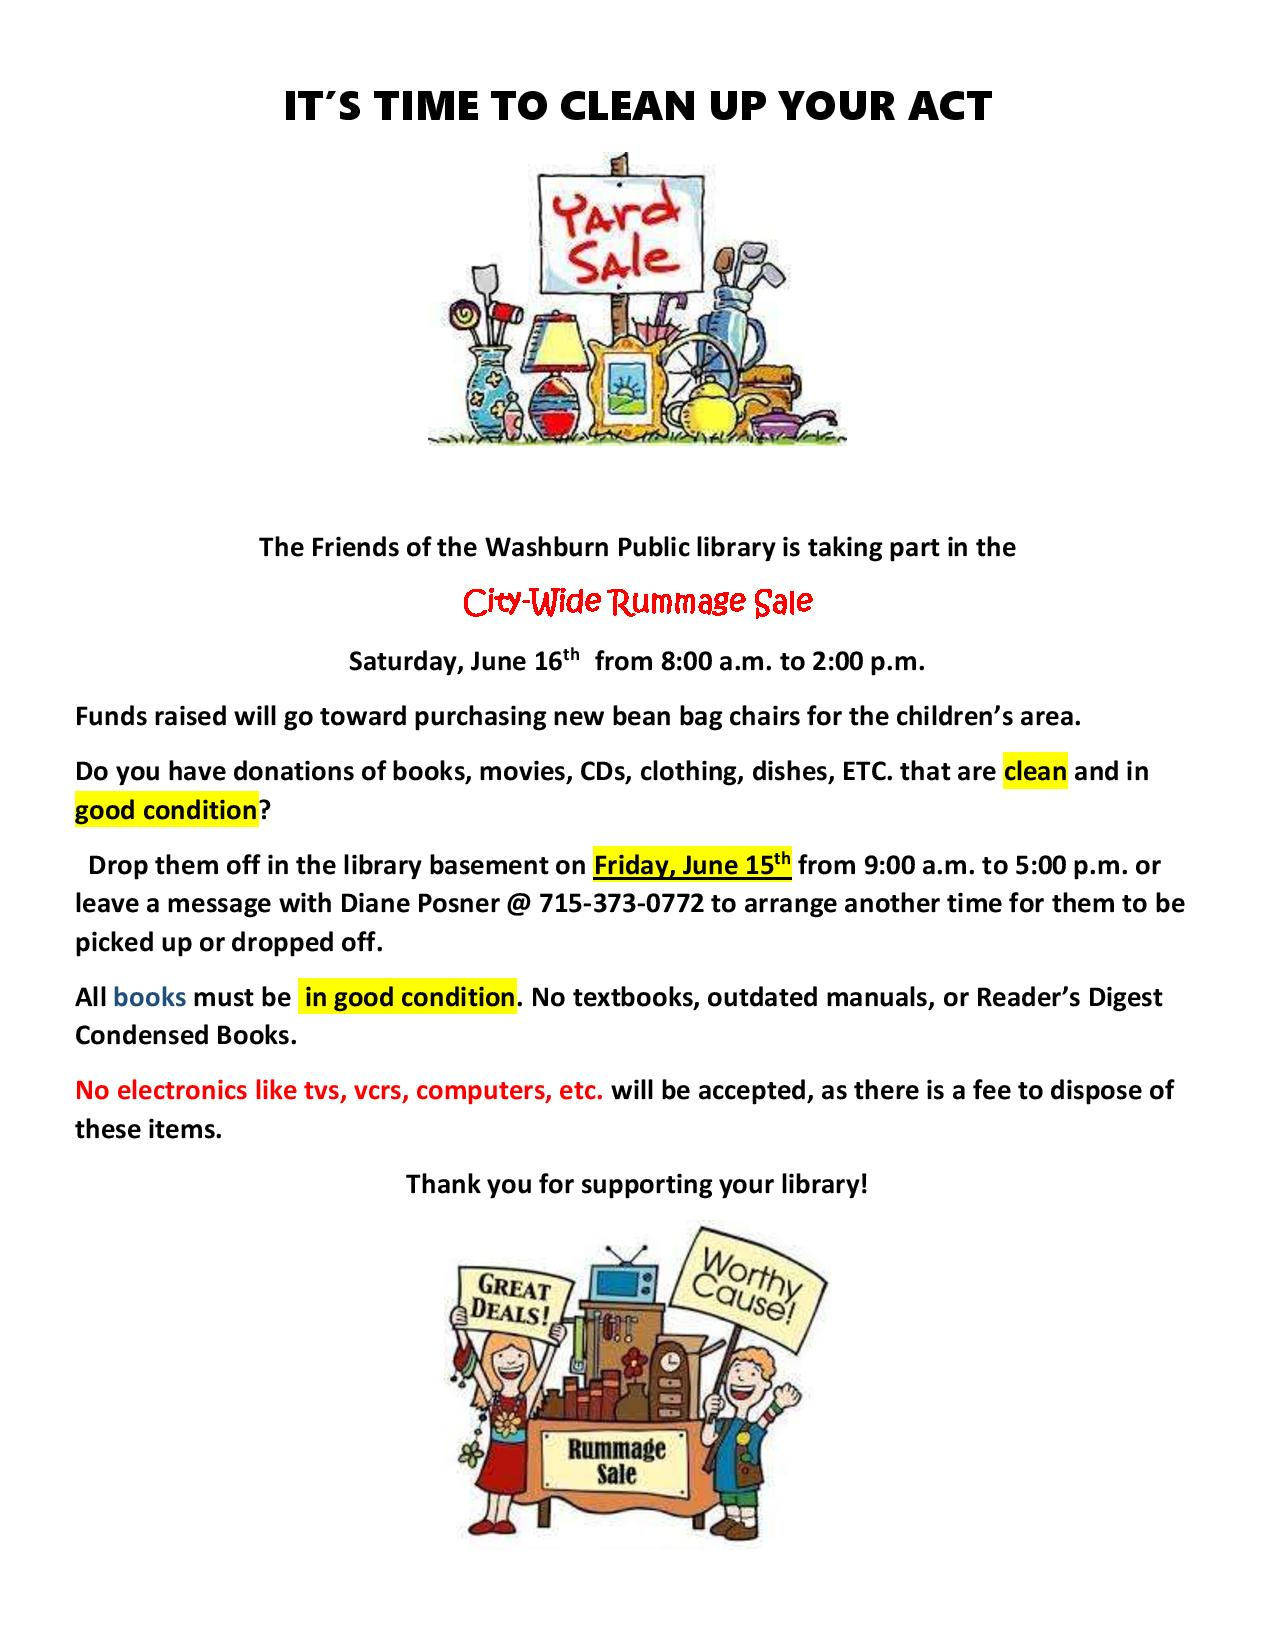 CITY-WIDE RUMMAGE SALE1-page-001.jpg